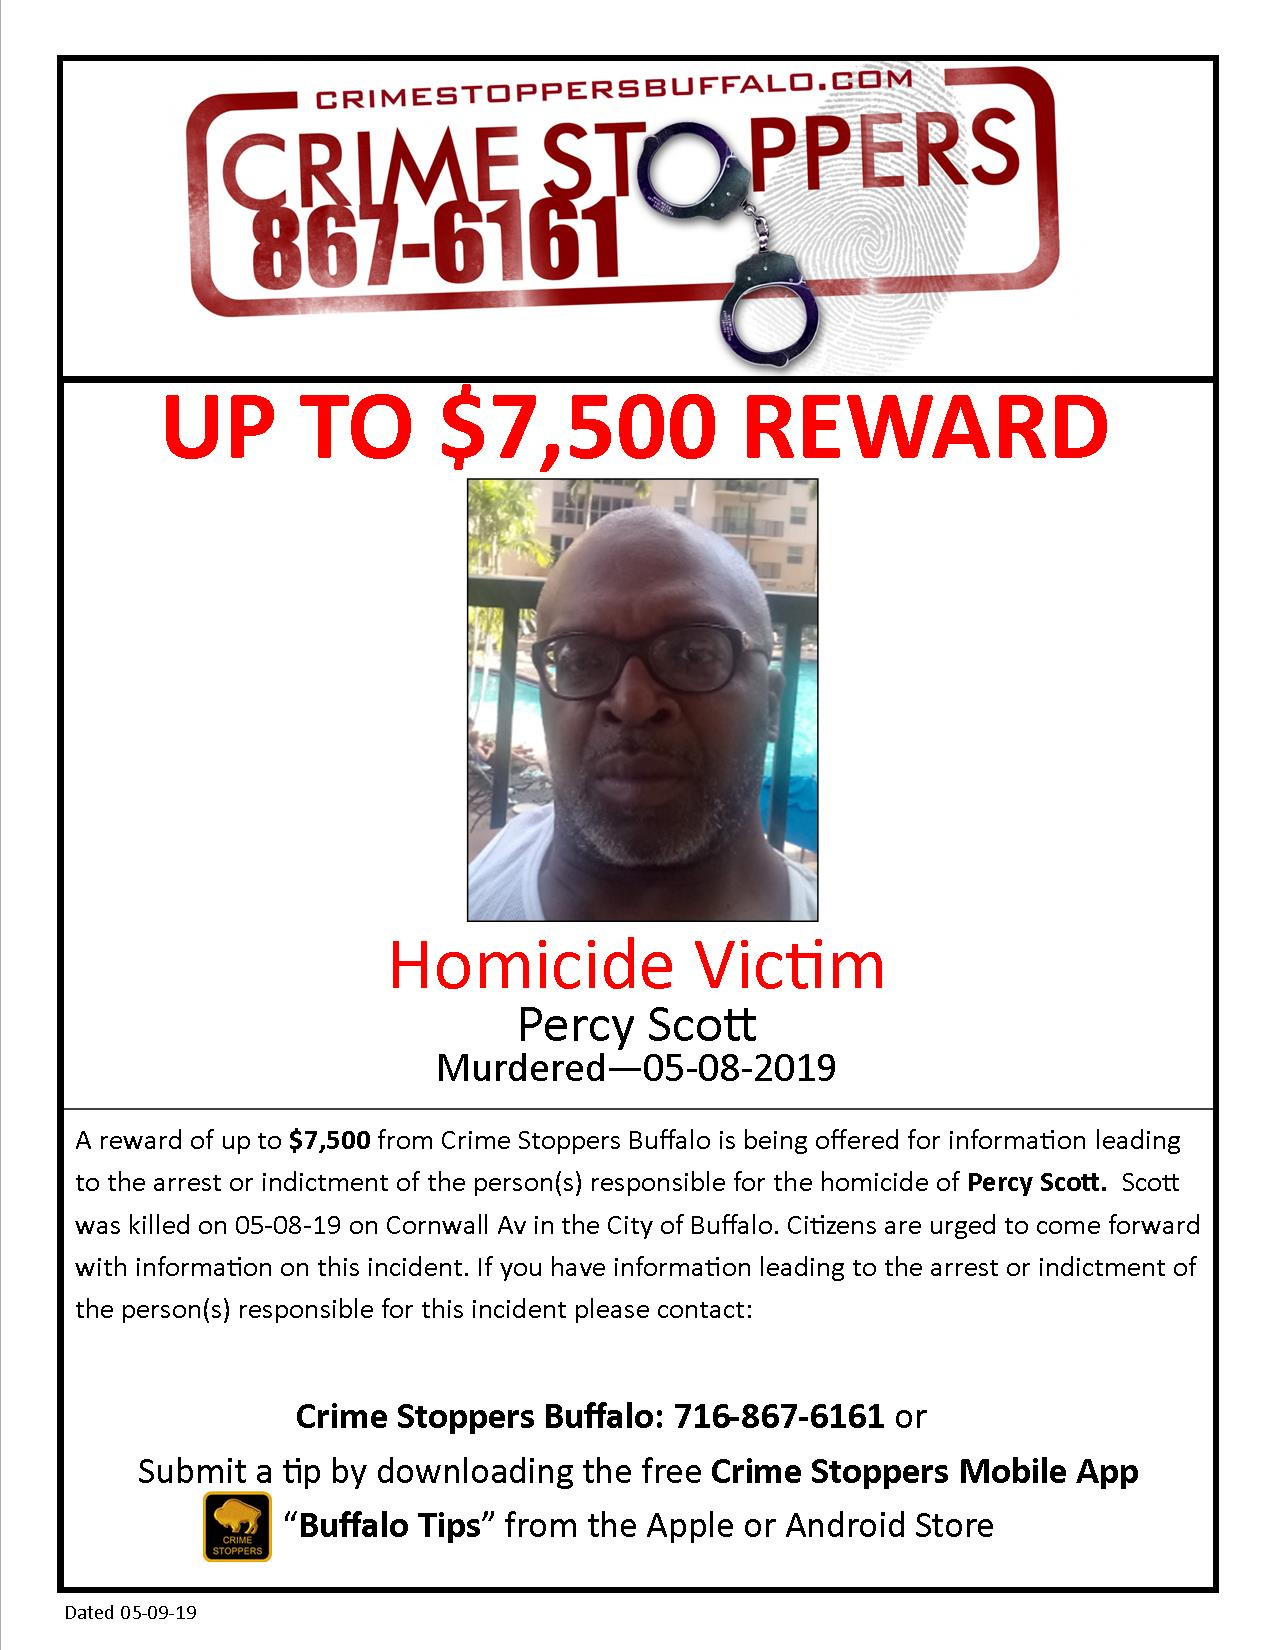 CrimeStoppers_HomicideVictim_PercyScott (2)